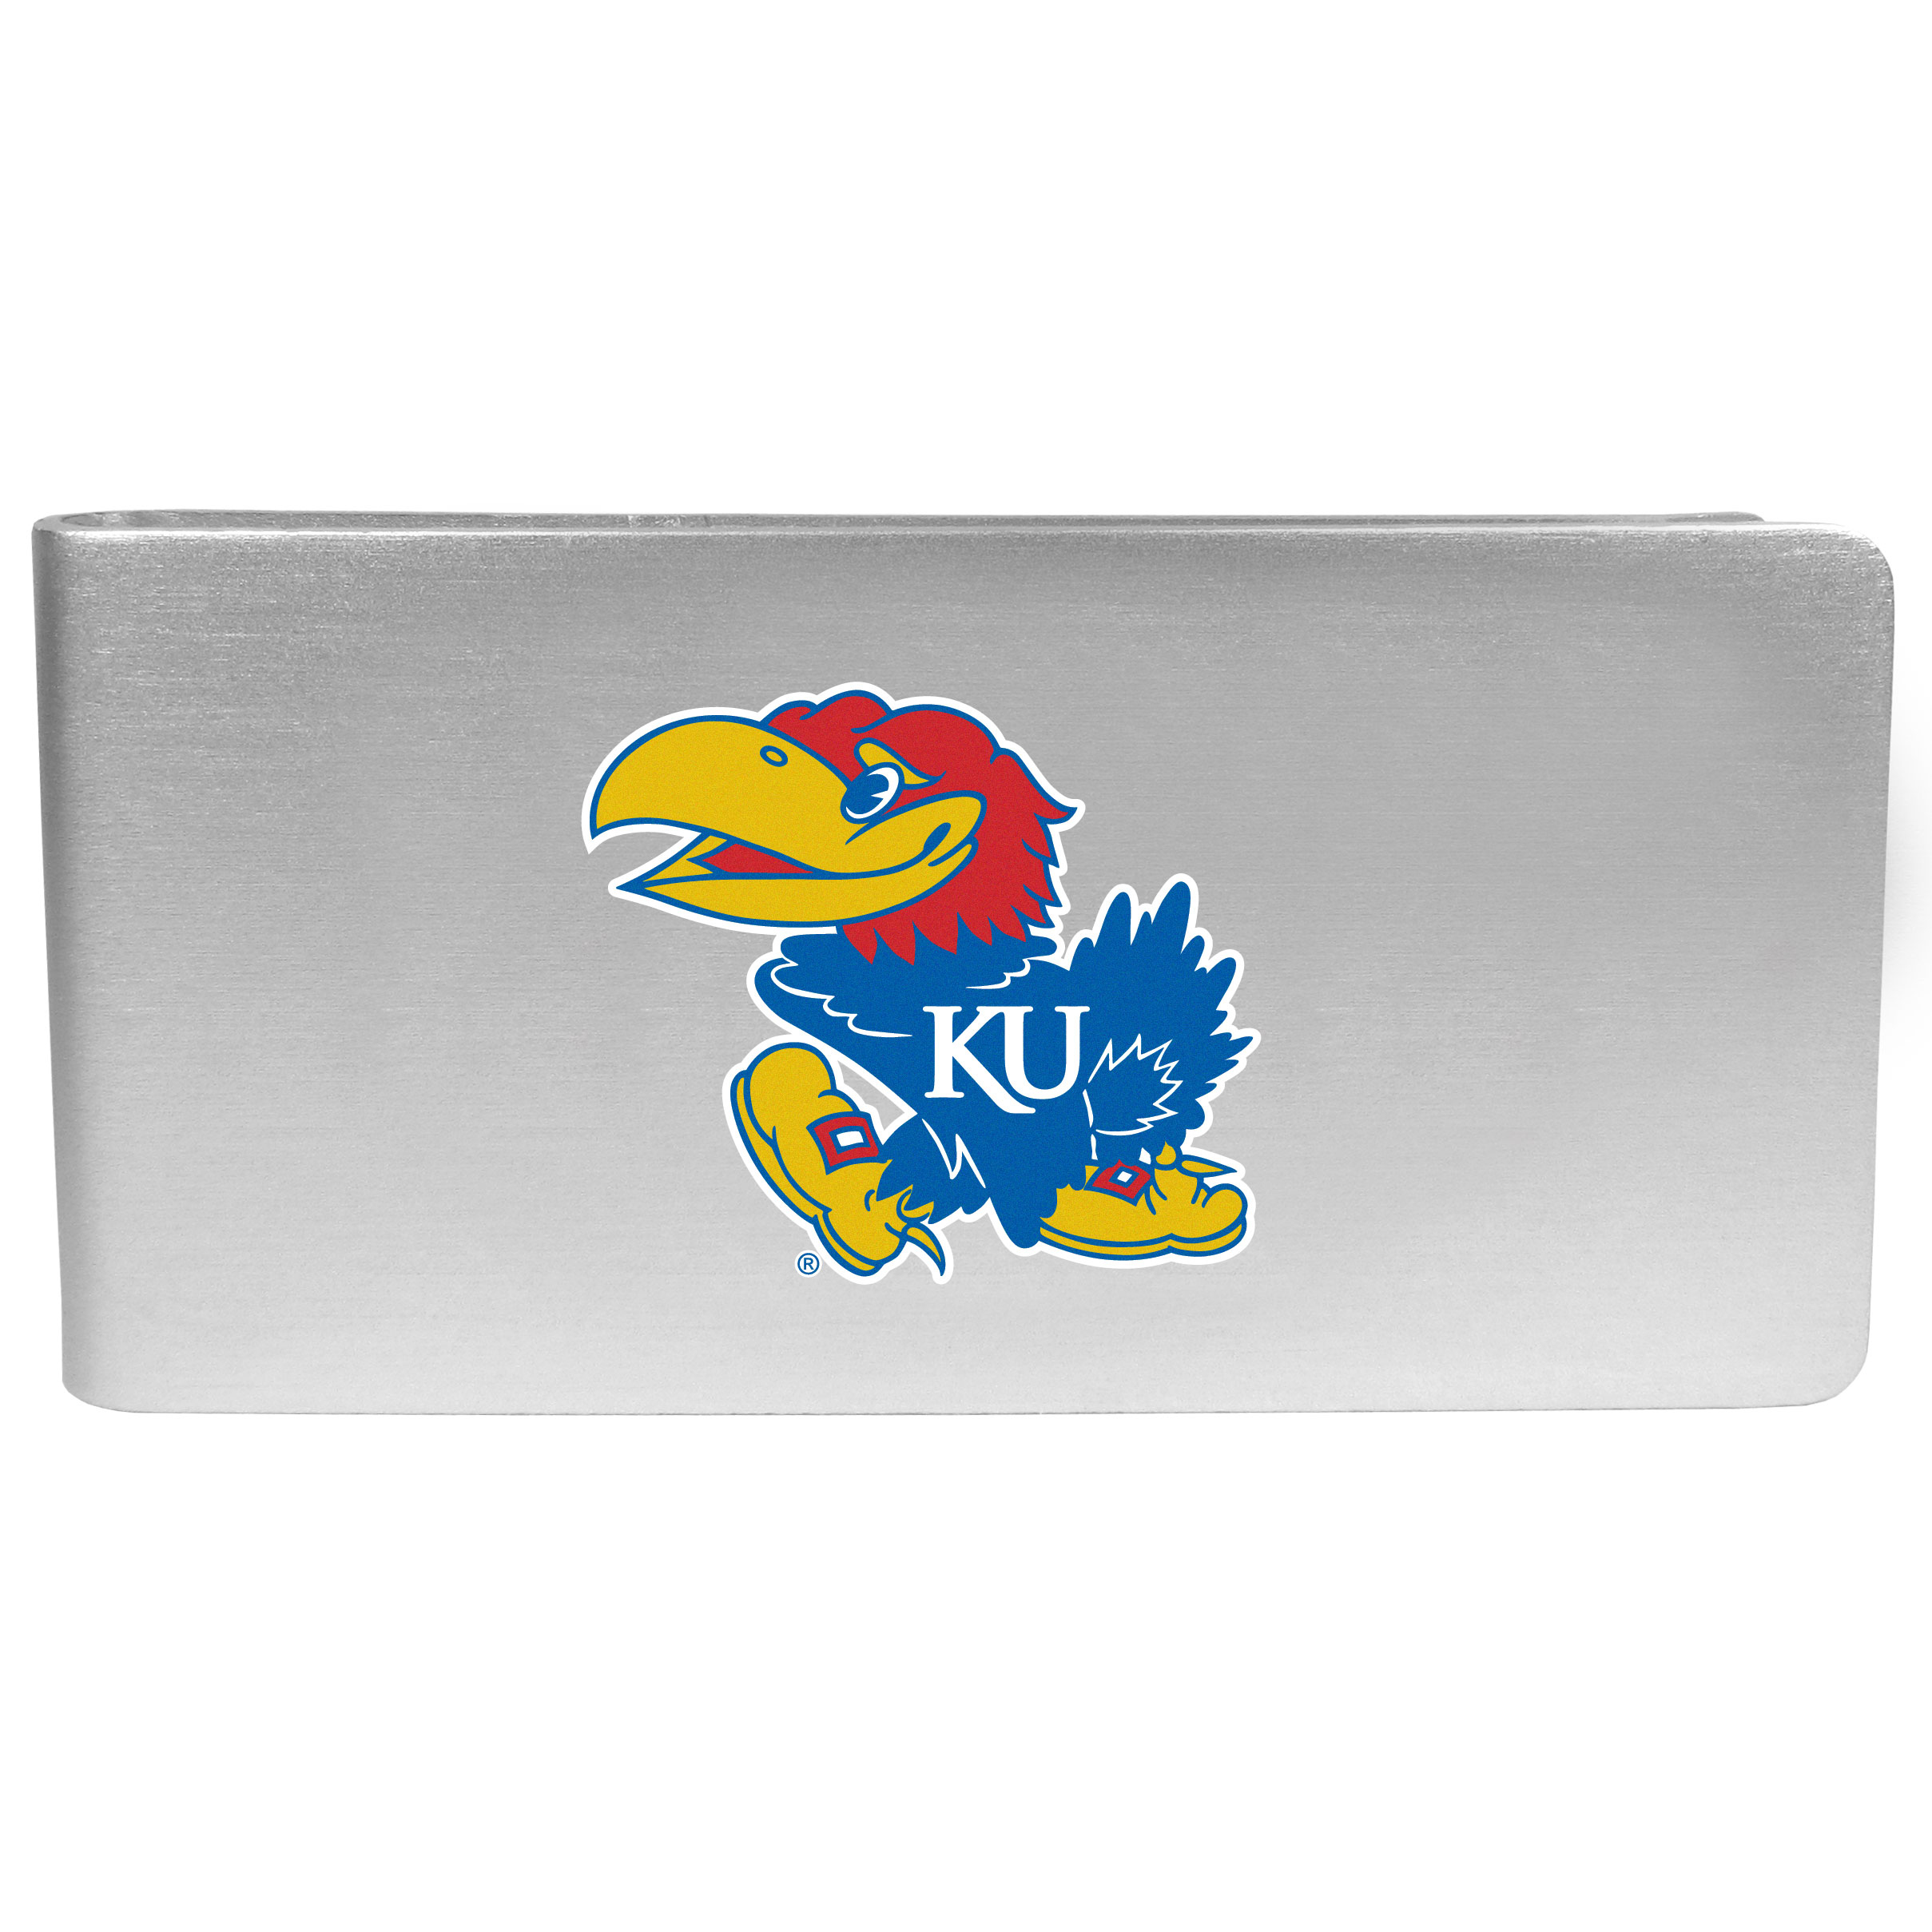 Kansas Jayhawks Logo Money Clip - Our brushed metal money clip has classic style and functionality. The attractive clip features the Kansas Jayhawks logo expertly printed on front.